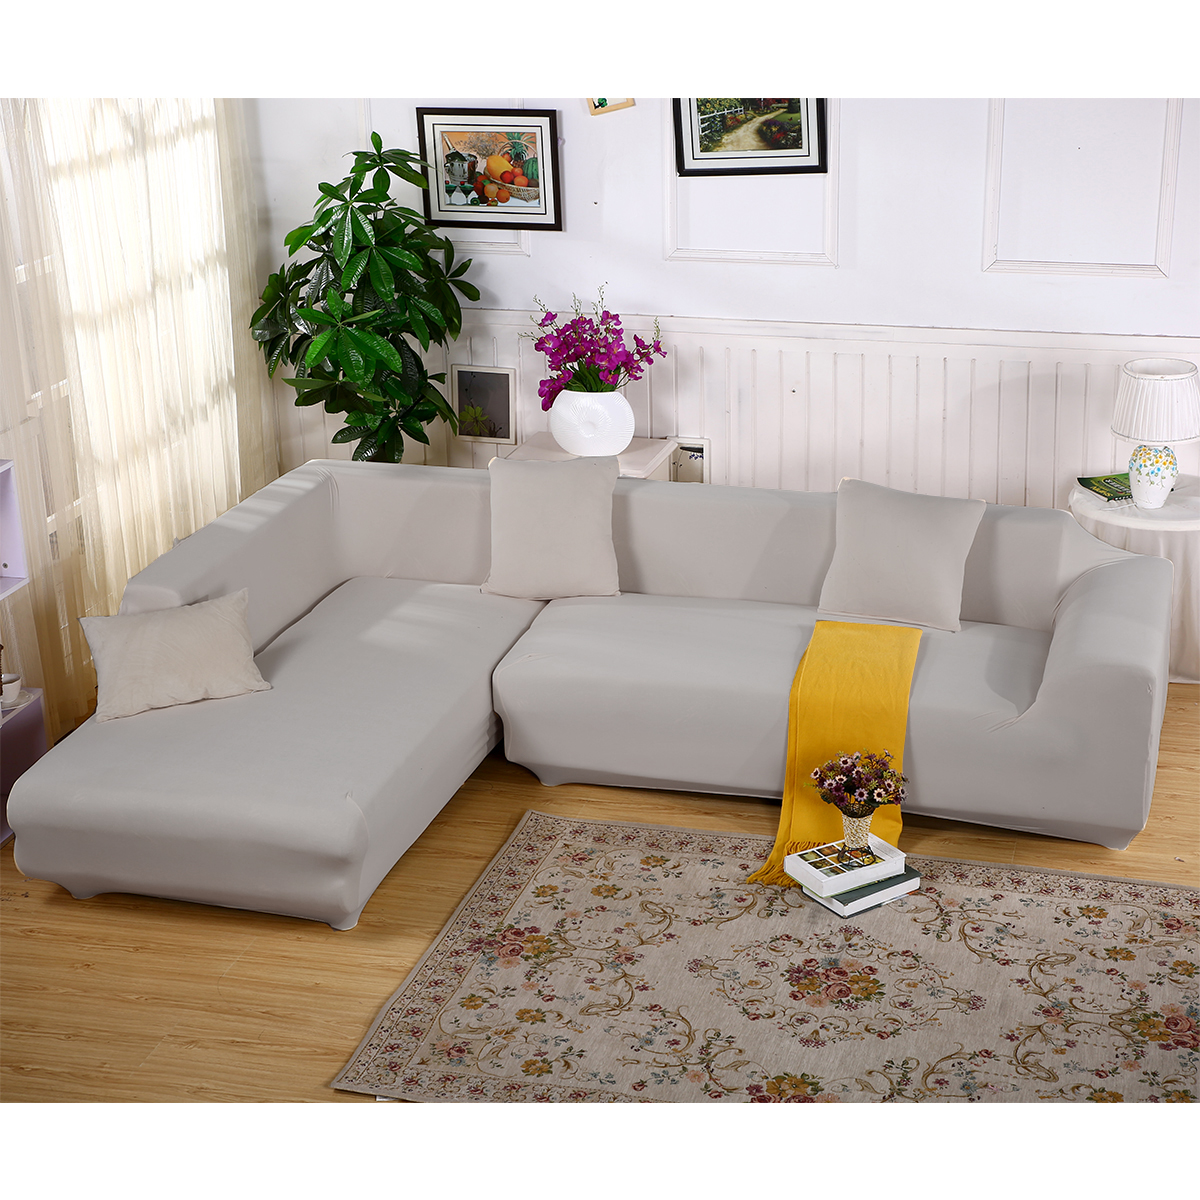 1 2 3 4 Seater Sofa Cover Slipcover Stretch Elastic Couch